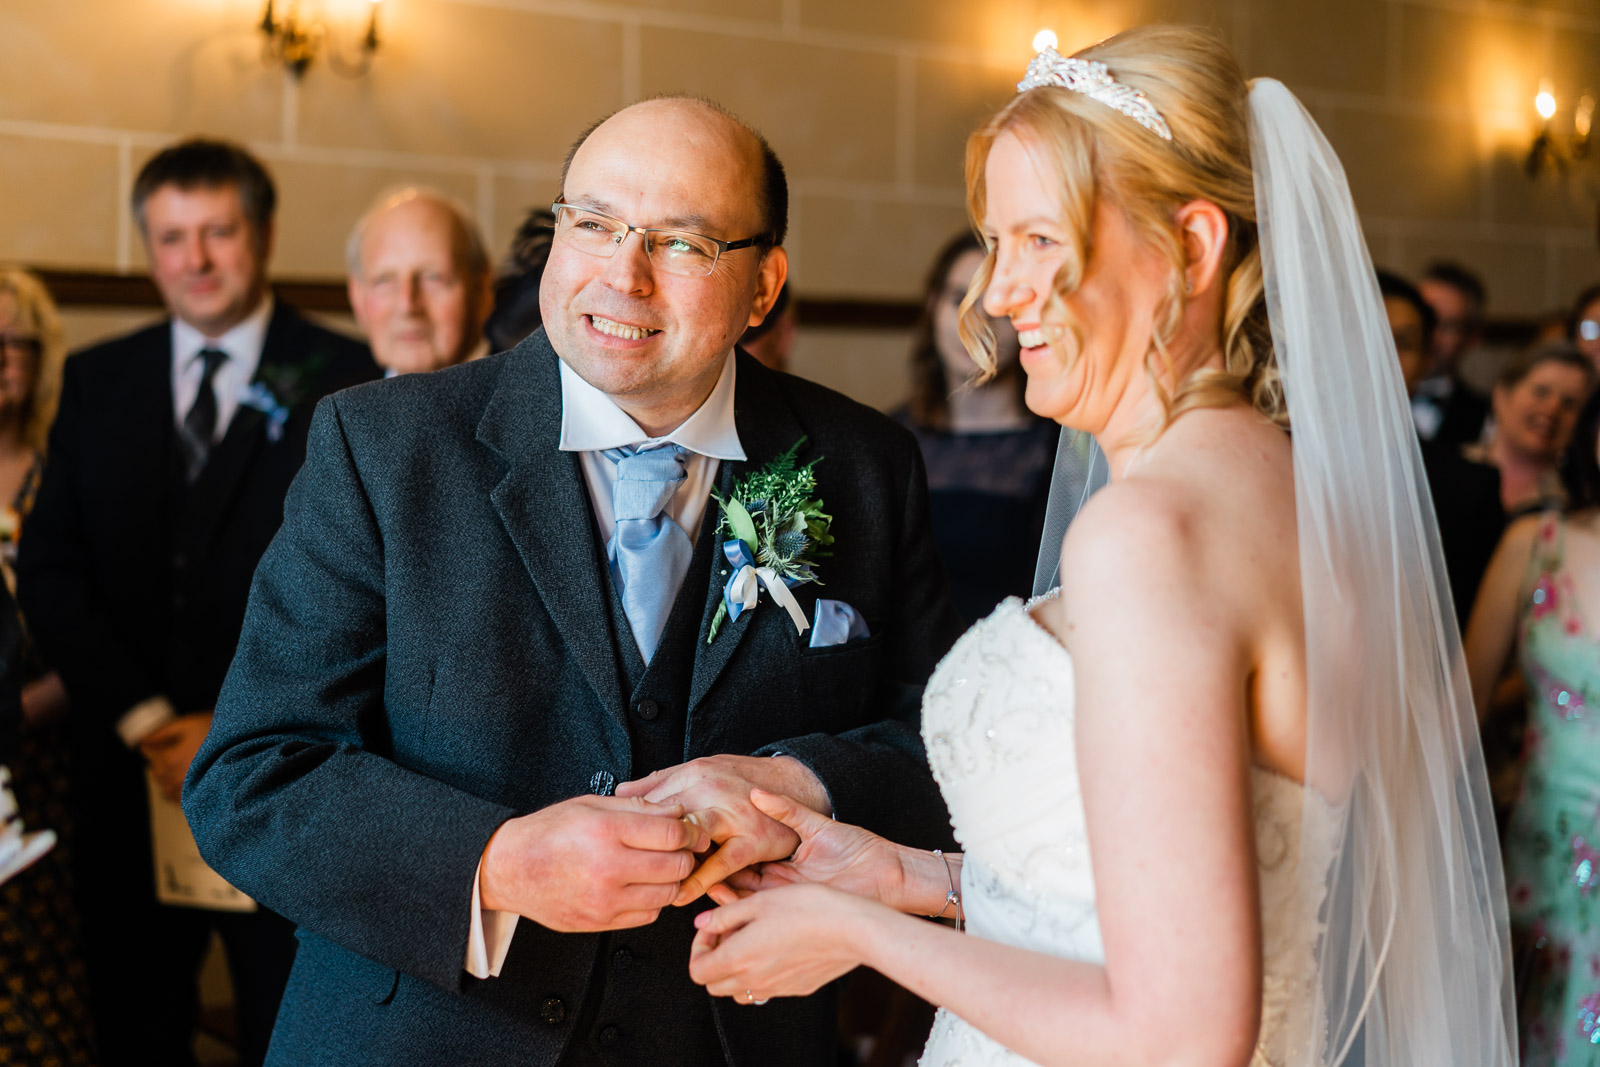 dalhousie_castle_wedding_edinburgh_dearlyphotography (138 of 371).jpg